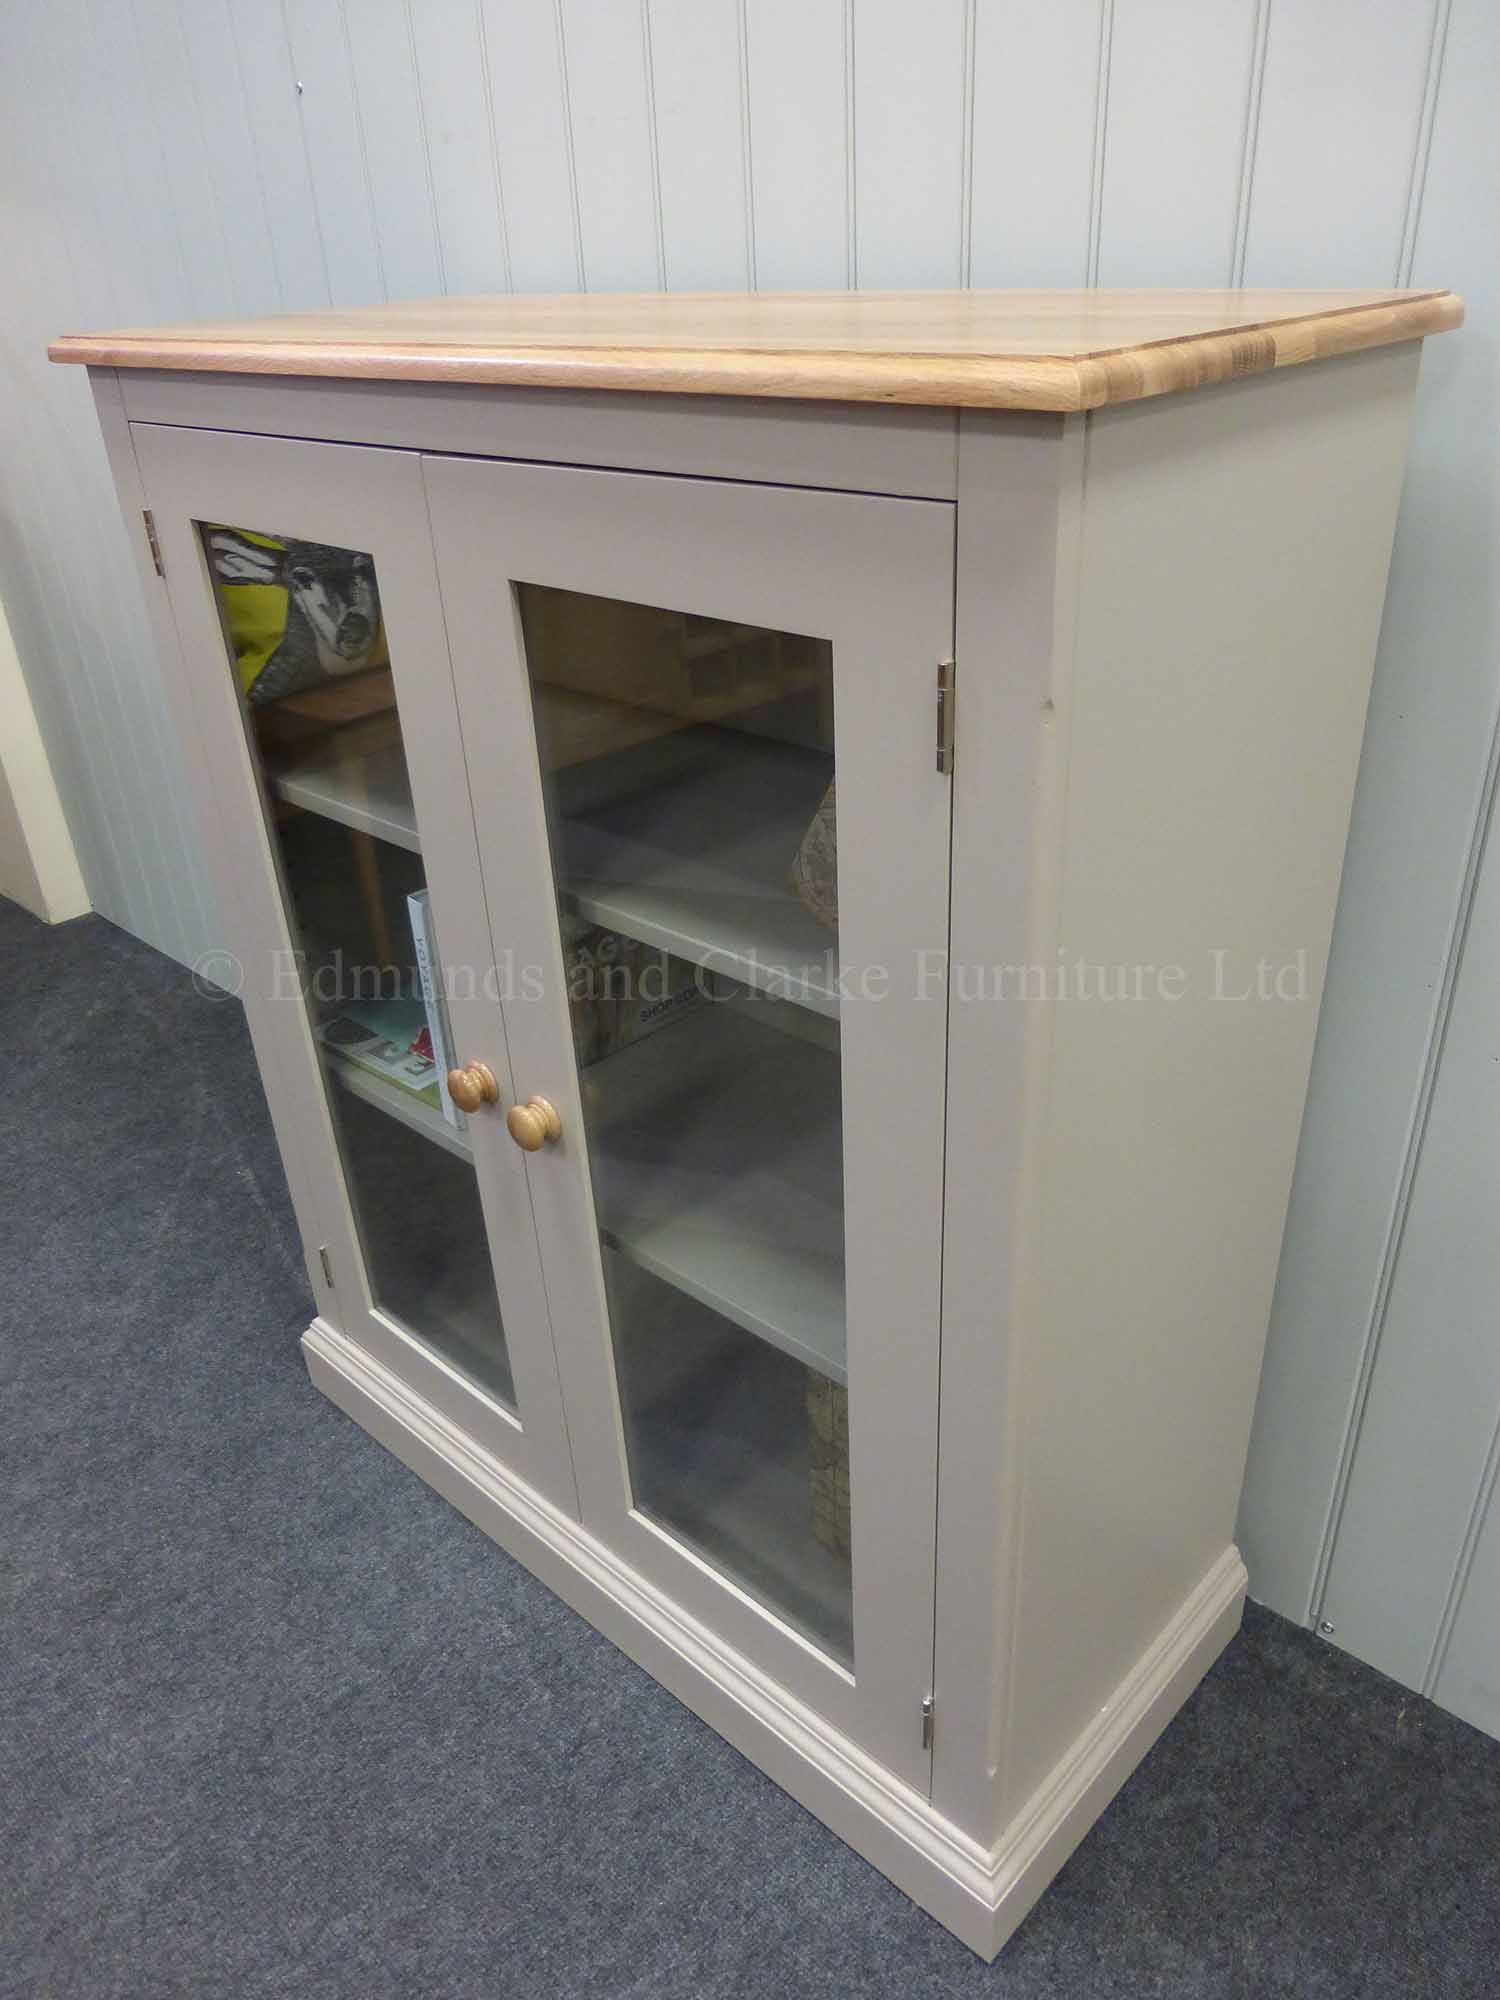 Painted low two door glazed bookcase, choice of paint colours and tops